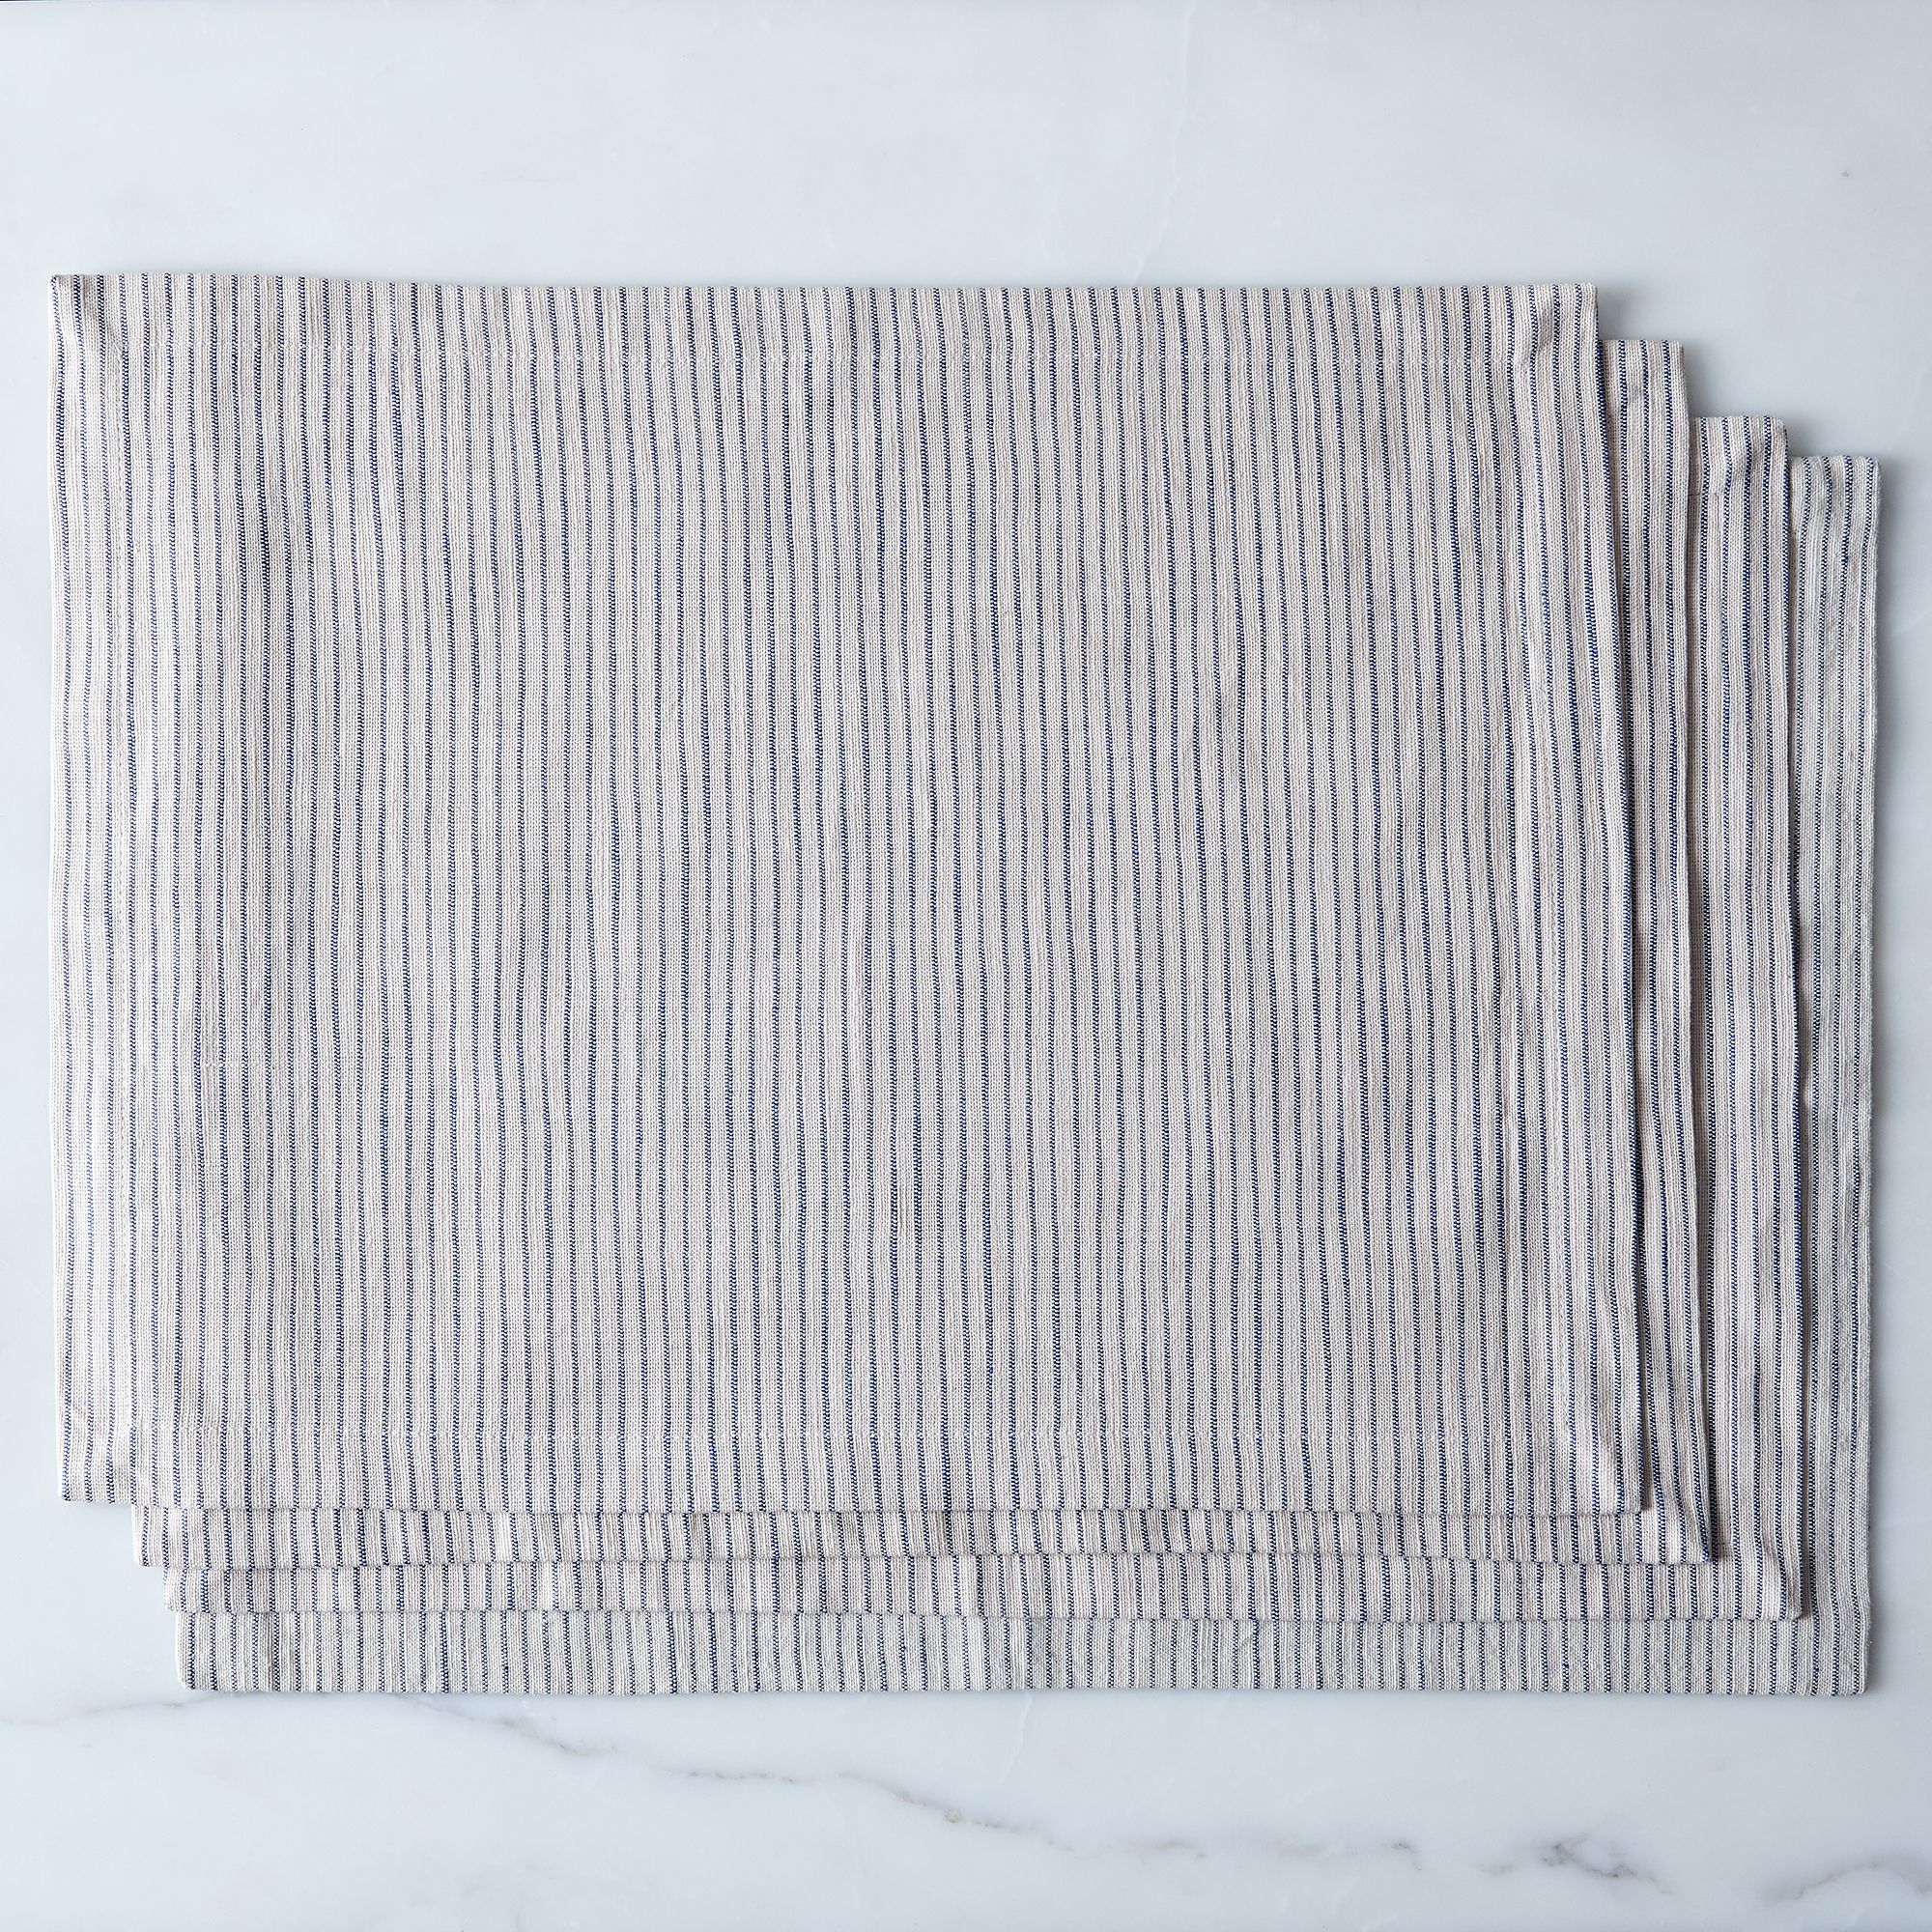 Ae40ad07 c9d3 4566 9246 84ea5b794491  2016 1111 food52 table linens striped placemats set of 4 silo rocky luten 0133